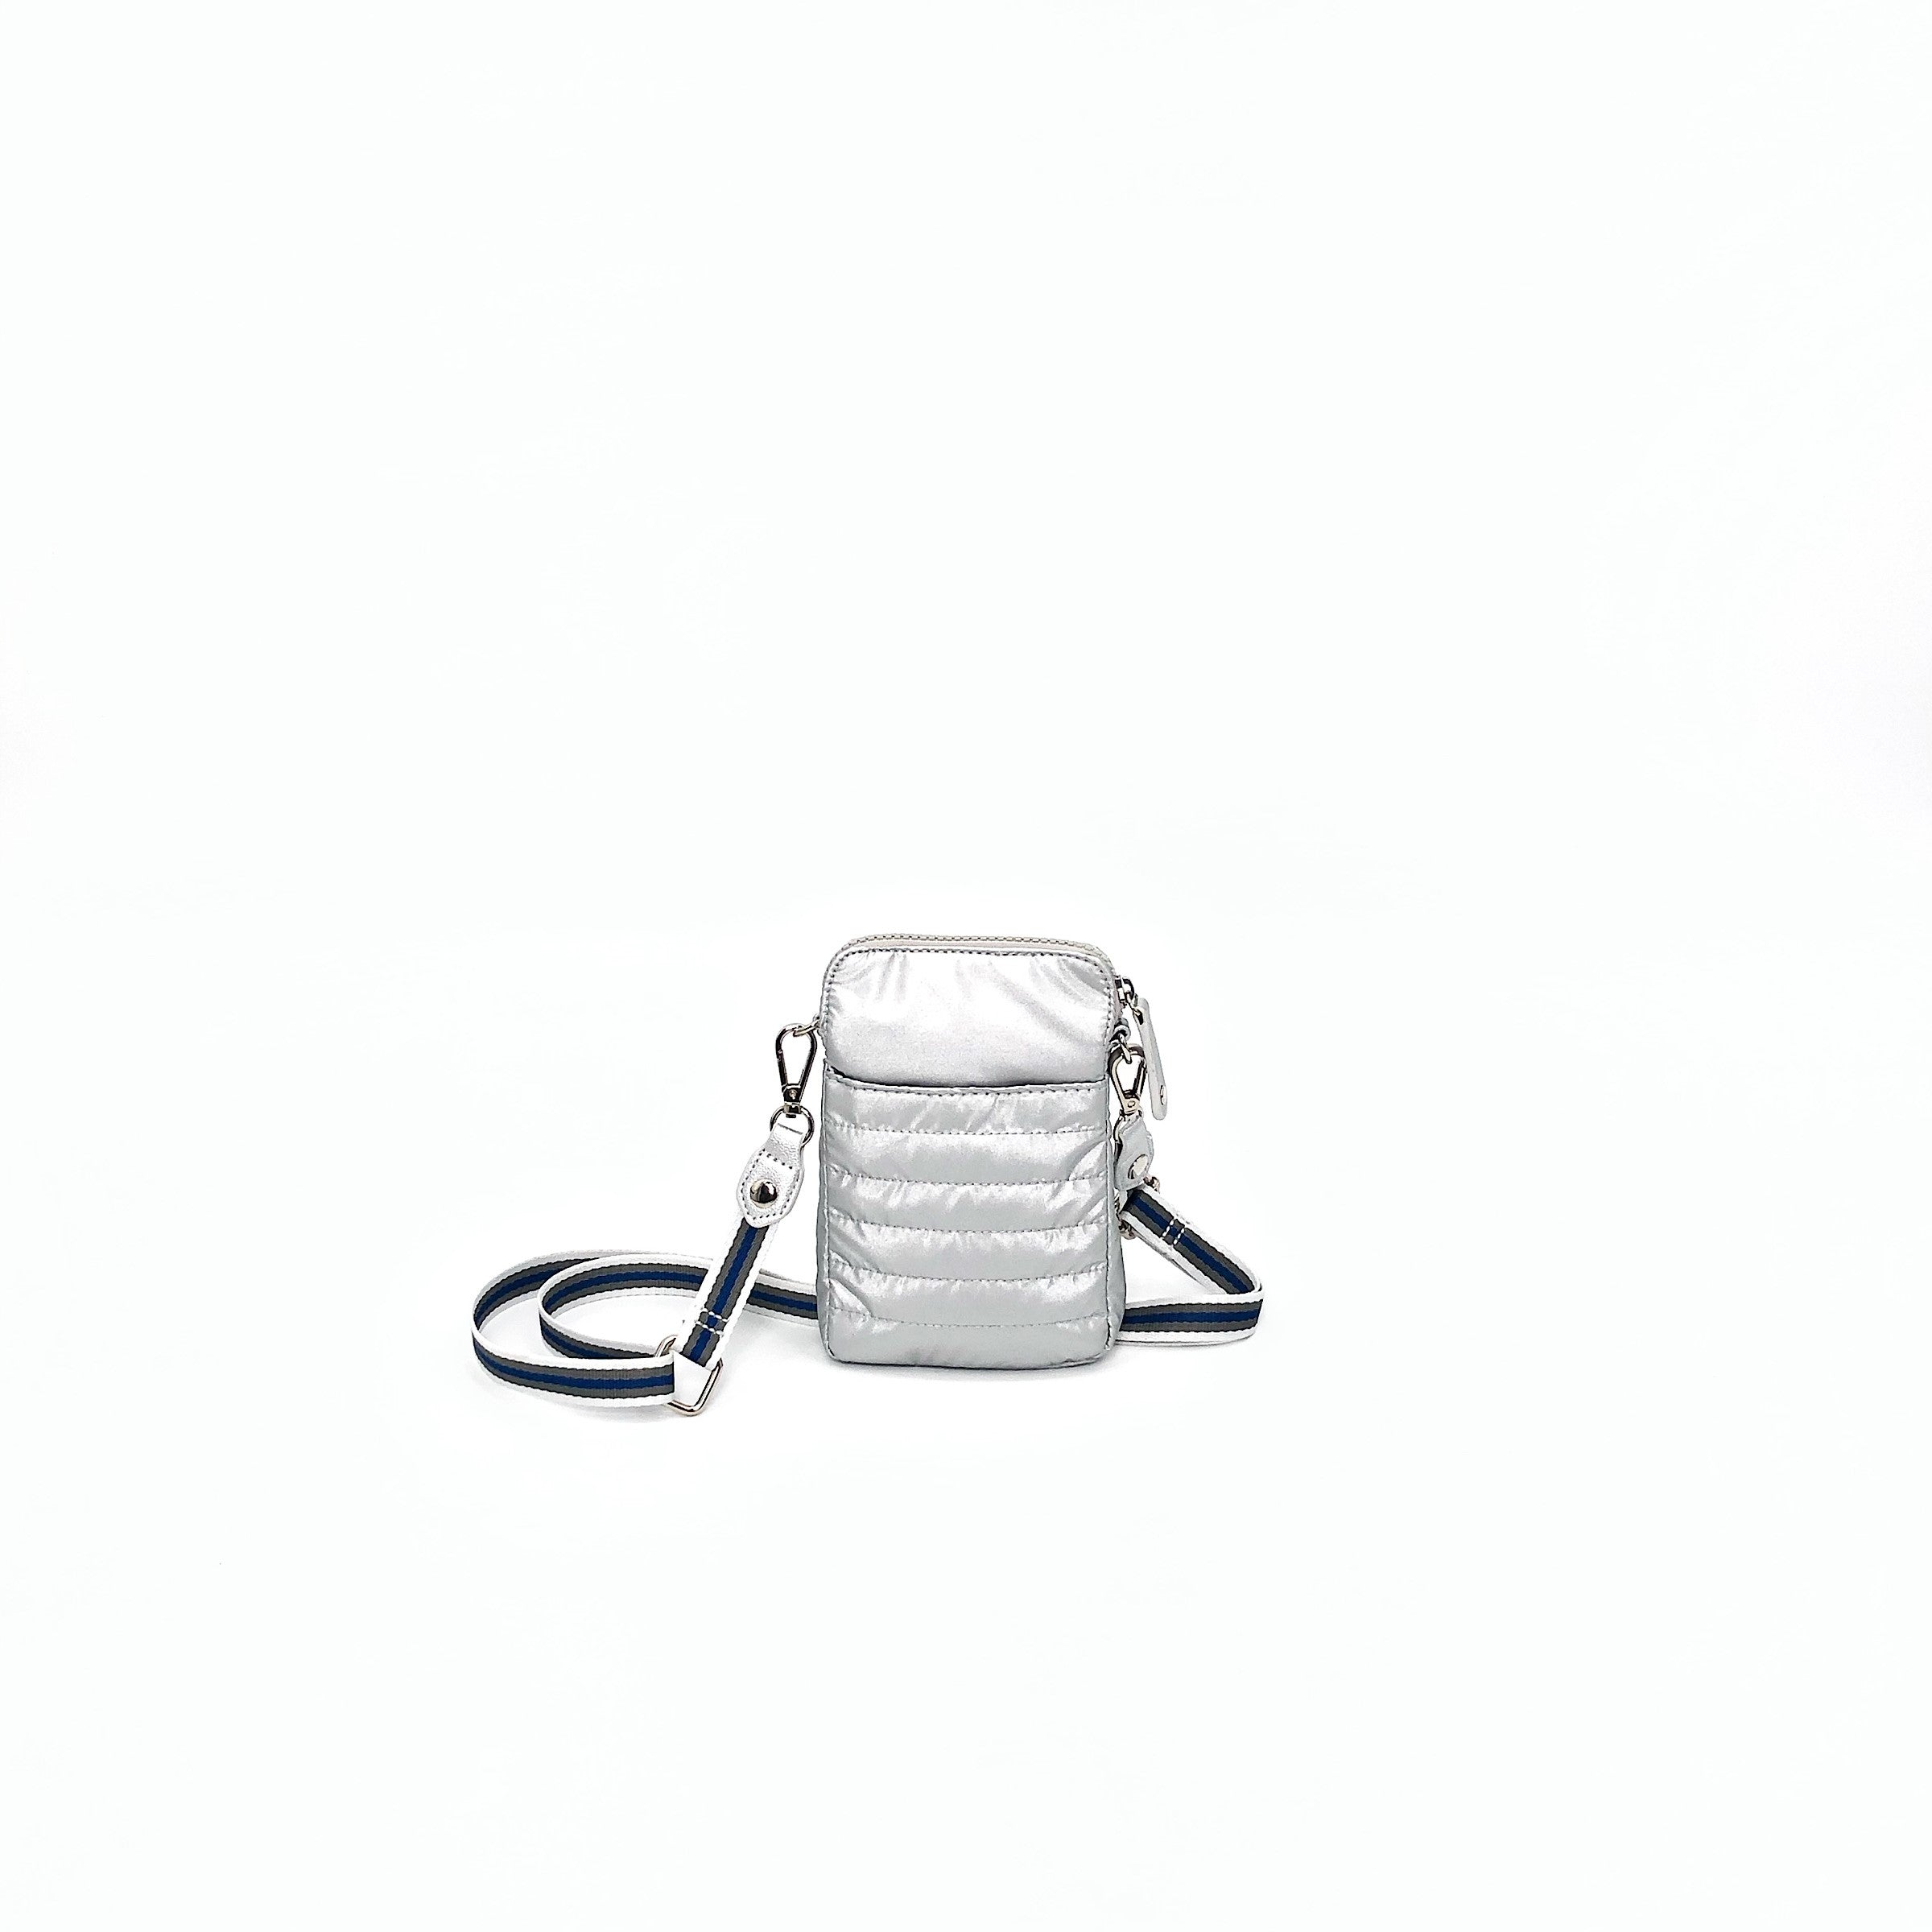 The Nylon Shiney Cell Phone Crossbody in Silver